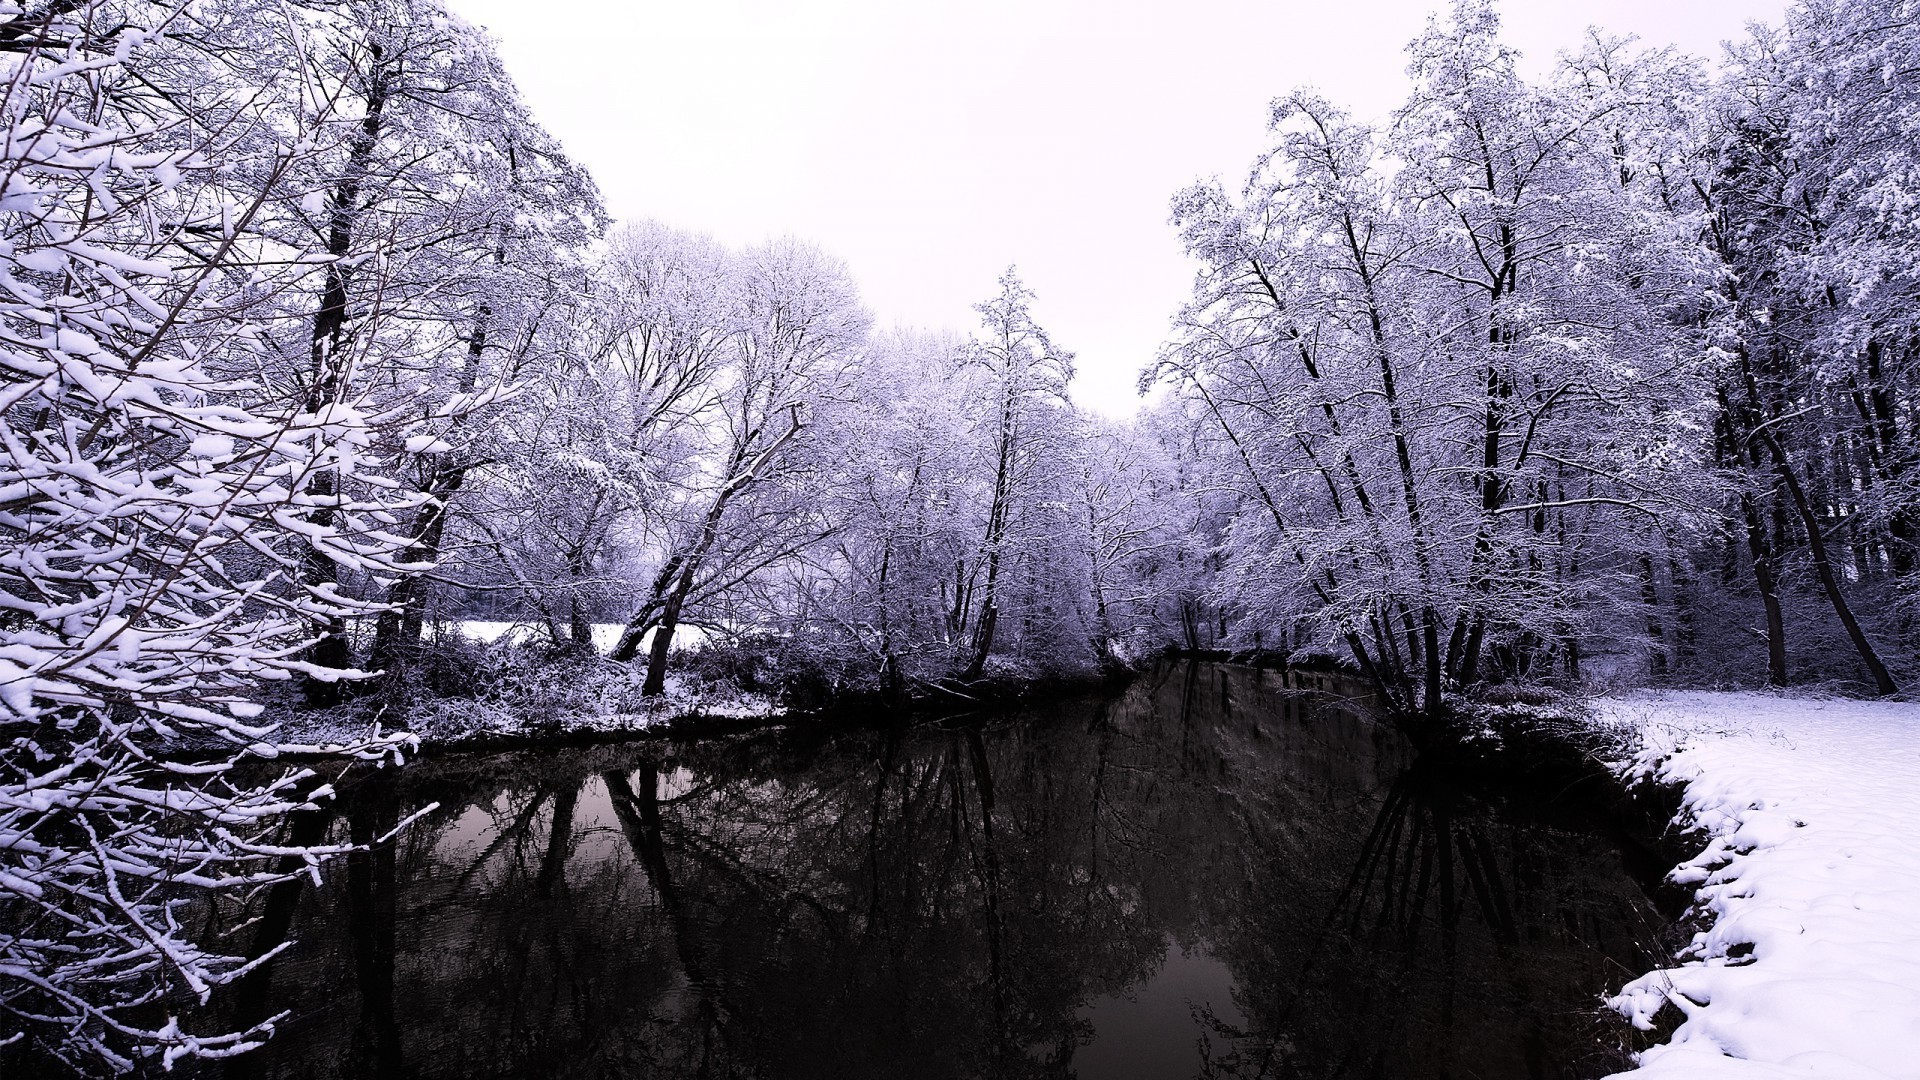 rivers ponds and streams tree winter wood snow landscape cold nature frost park scenic season ice branch fog scenery outdoors frozen